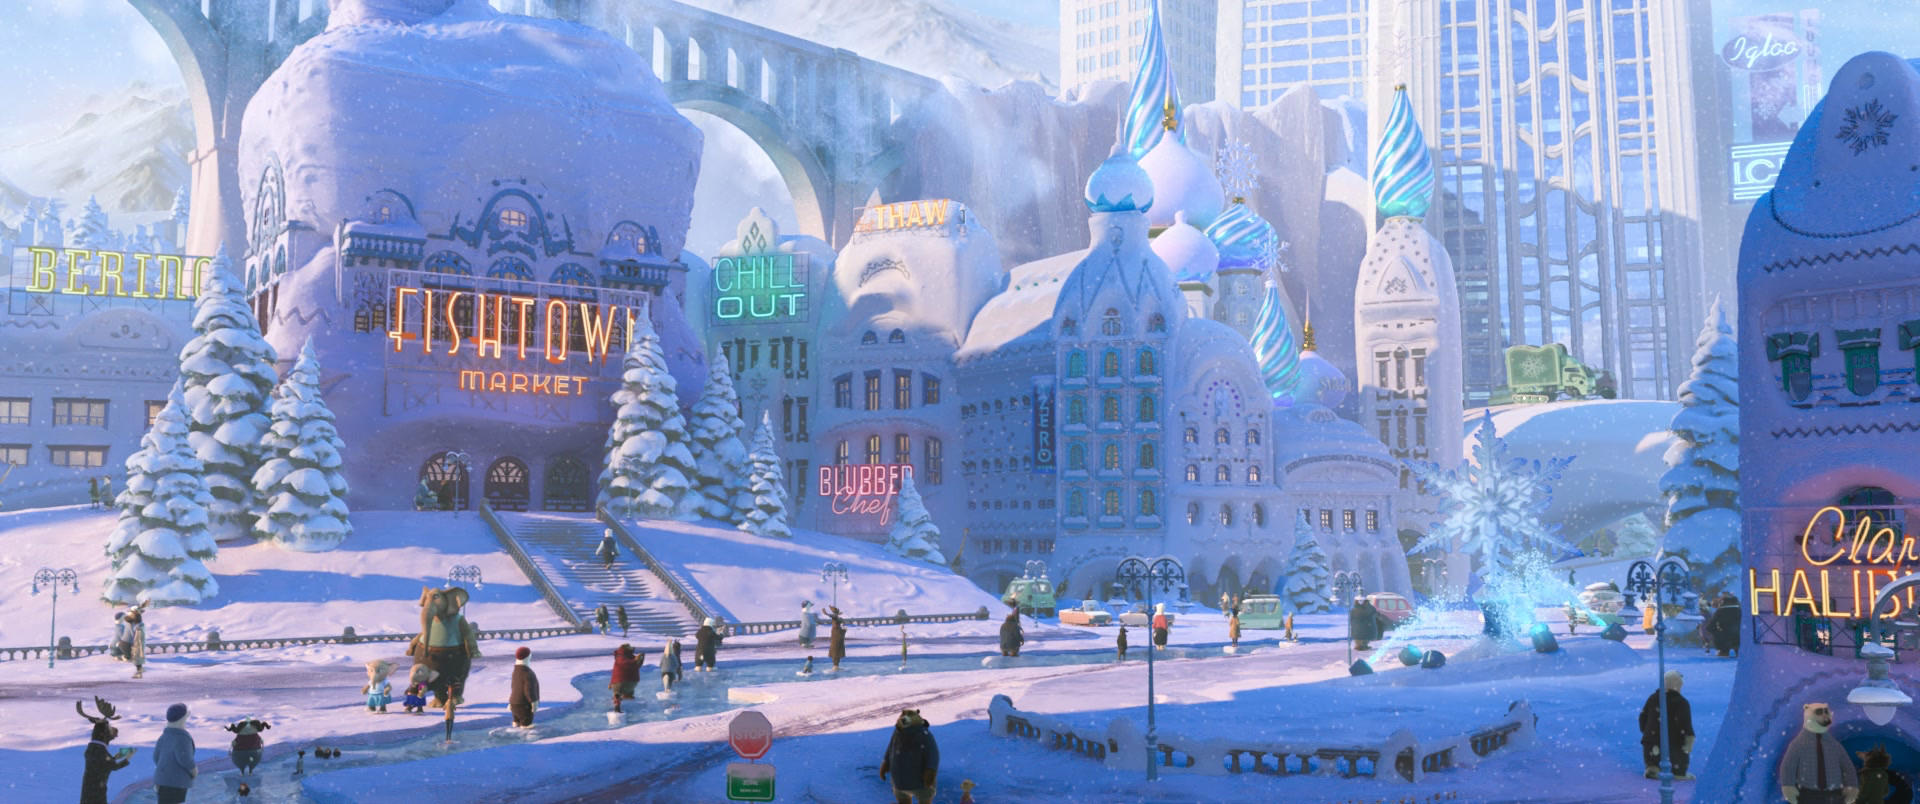 ZOOTOPIA – Easter Egg: Elephant girls wearing FROZEN Anna and Elsa outfits. ©2016 Disney. All Rights Reserved.